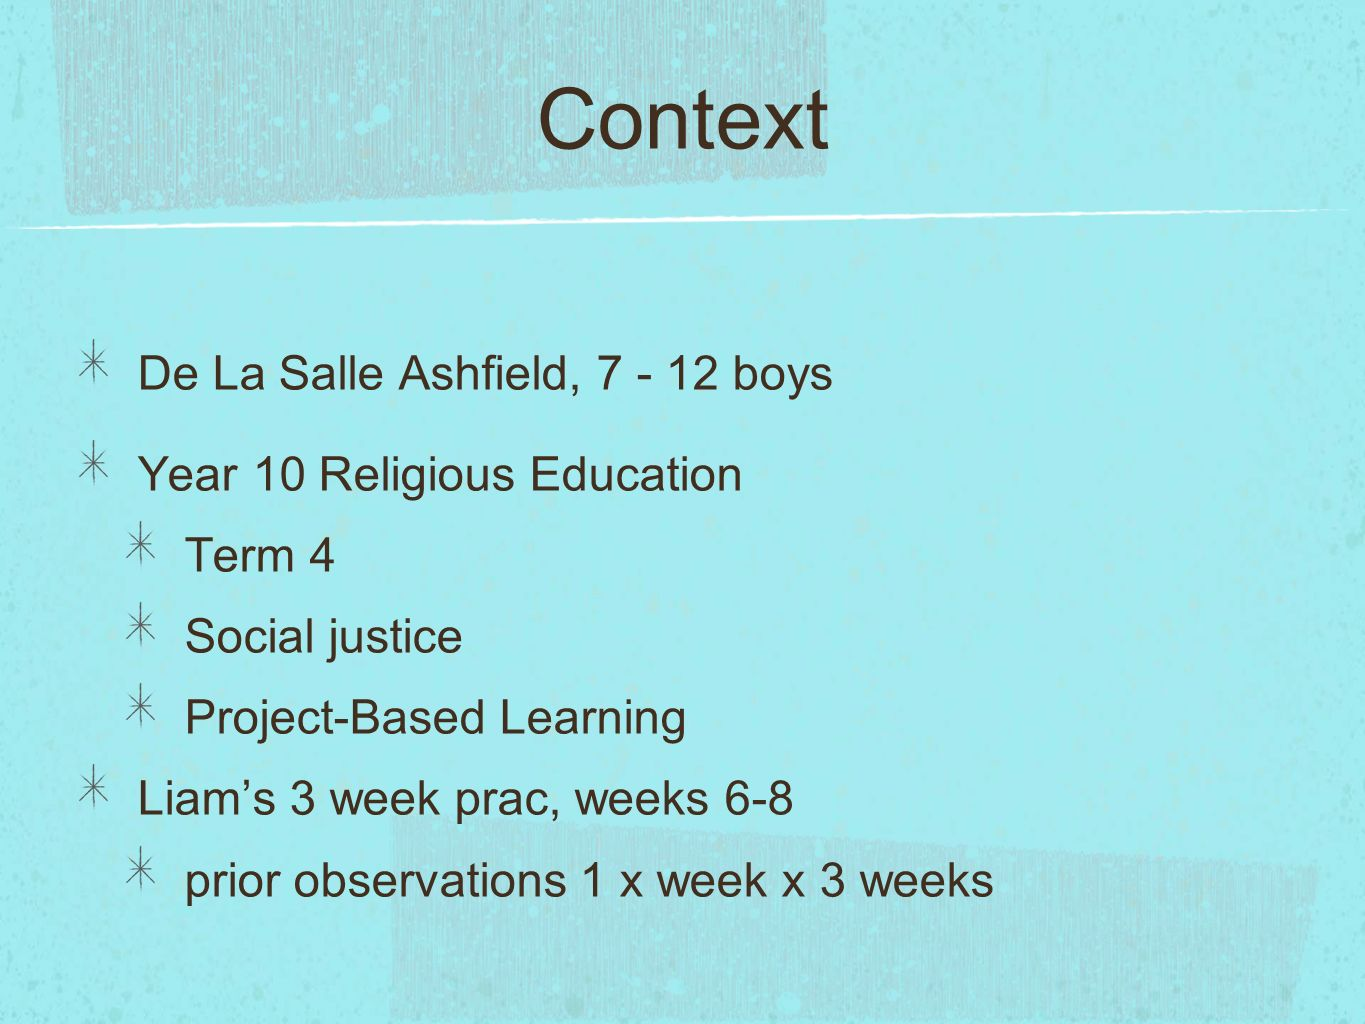 Context De La Salle Ashfield, 7 - 12 boys Year 10 Religious Education Term 4 Social justice Project-Based Learning Liams 3 week prac, weeks 6-8 prior observations 1 x week x 3 weeks